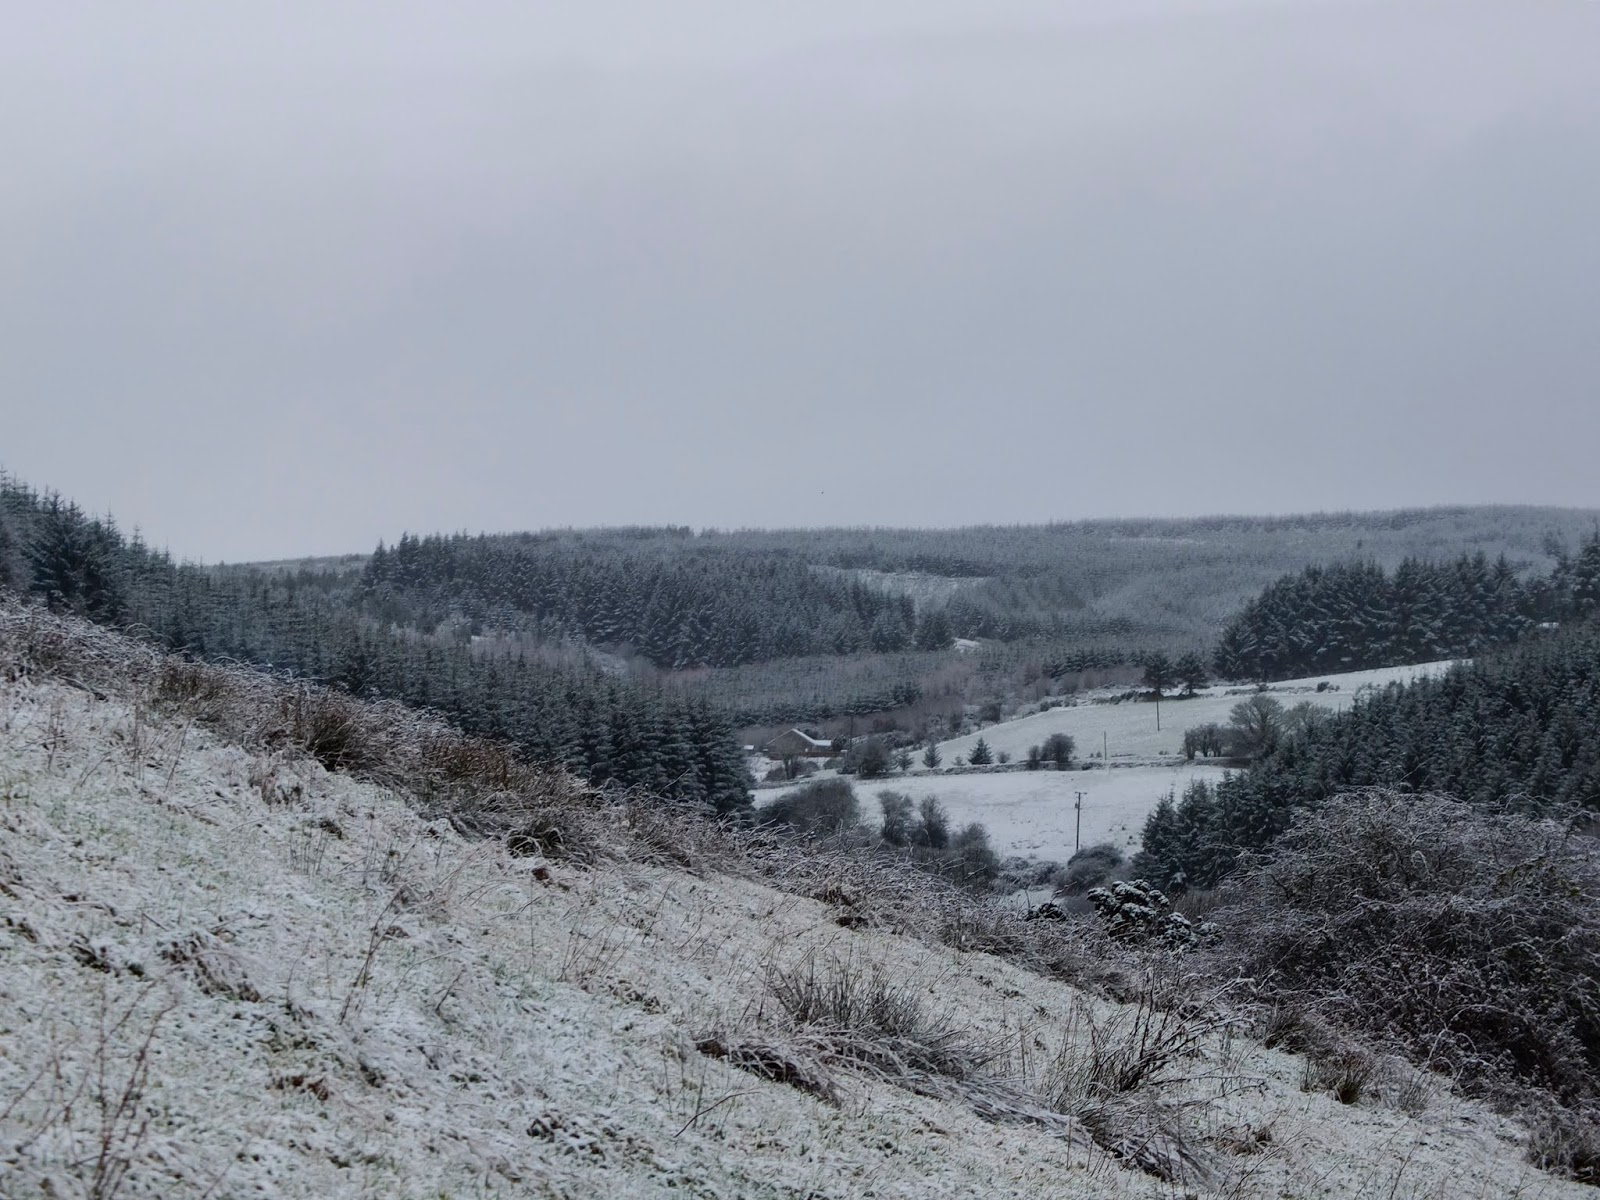 Snow capped forestry in the Boggeragh Mountains in North Cork.